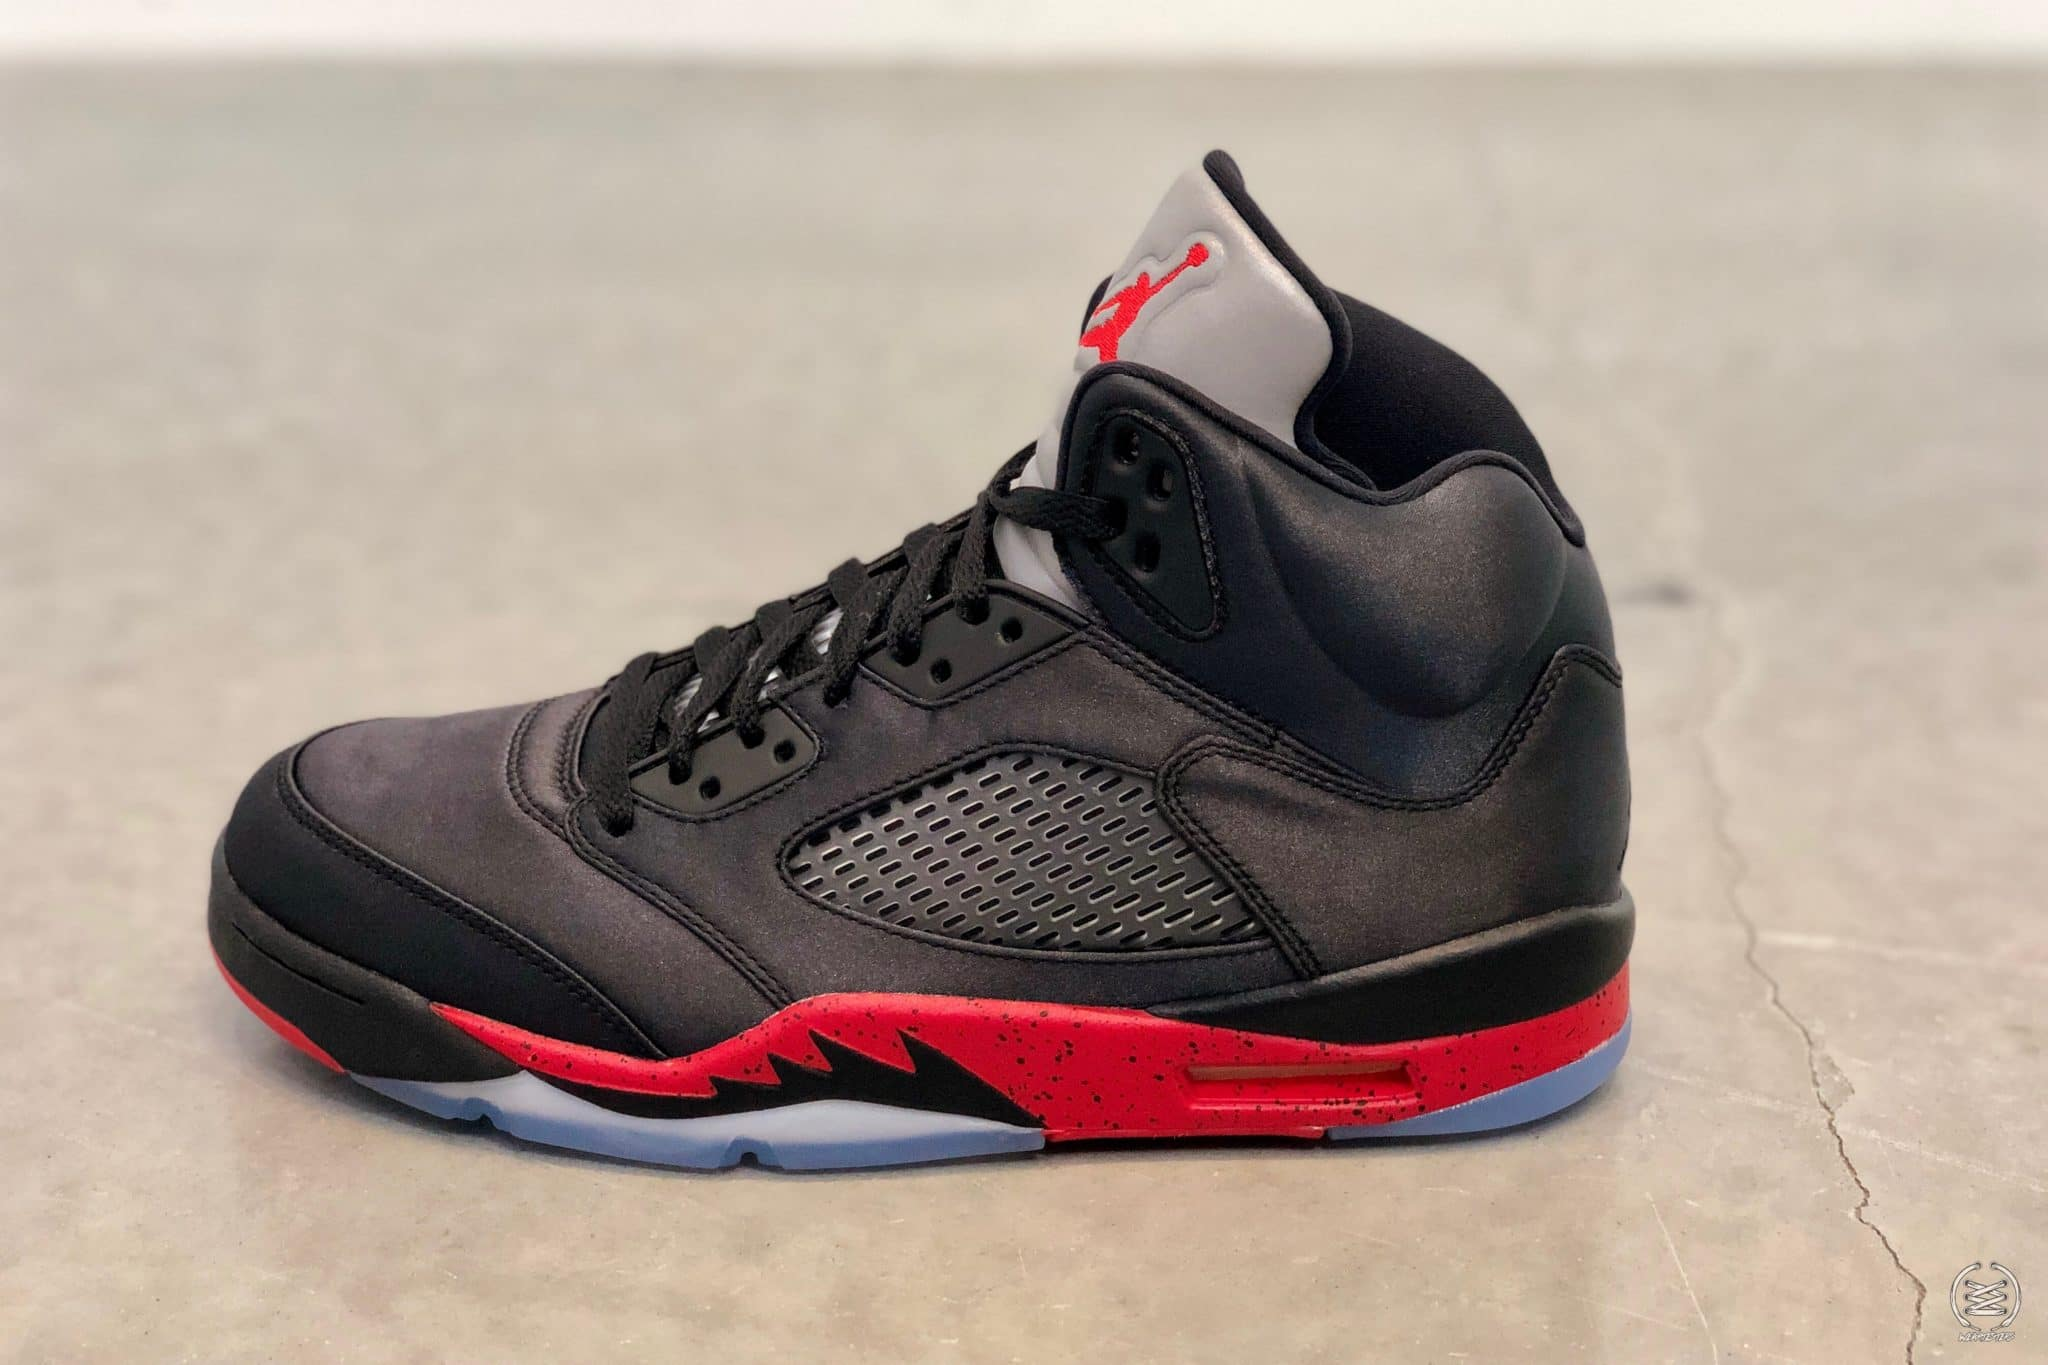 The Air Jordan 5 Satin Release Date Has Been Moved Up - WearTesters 21a53bbe5